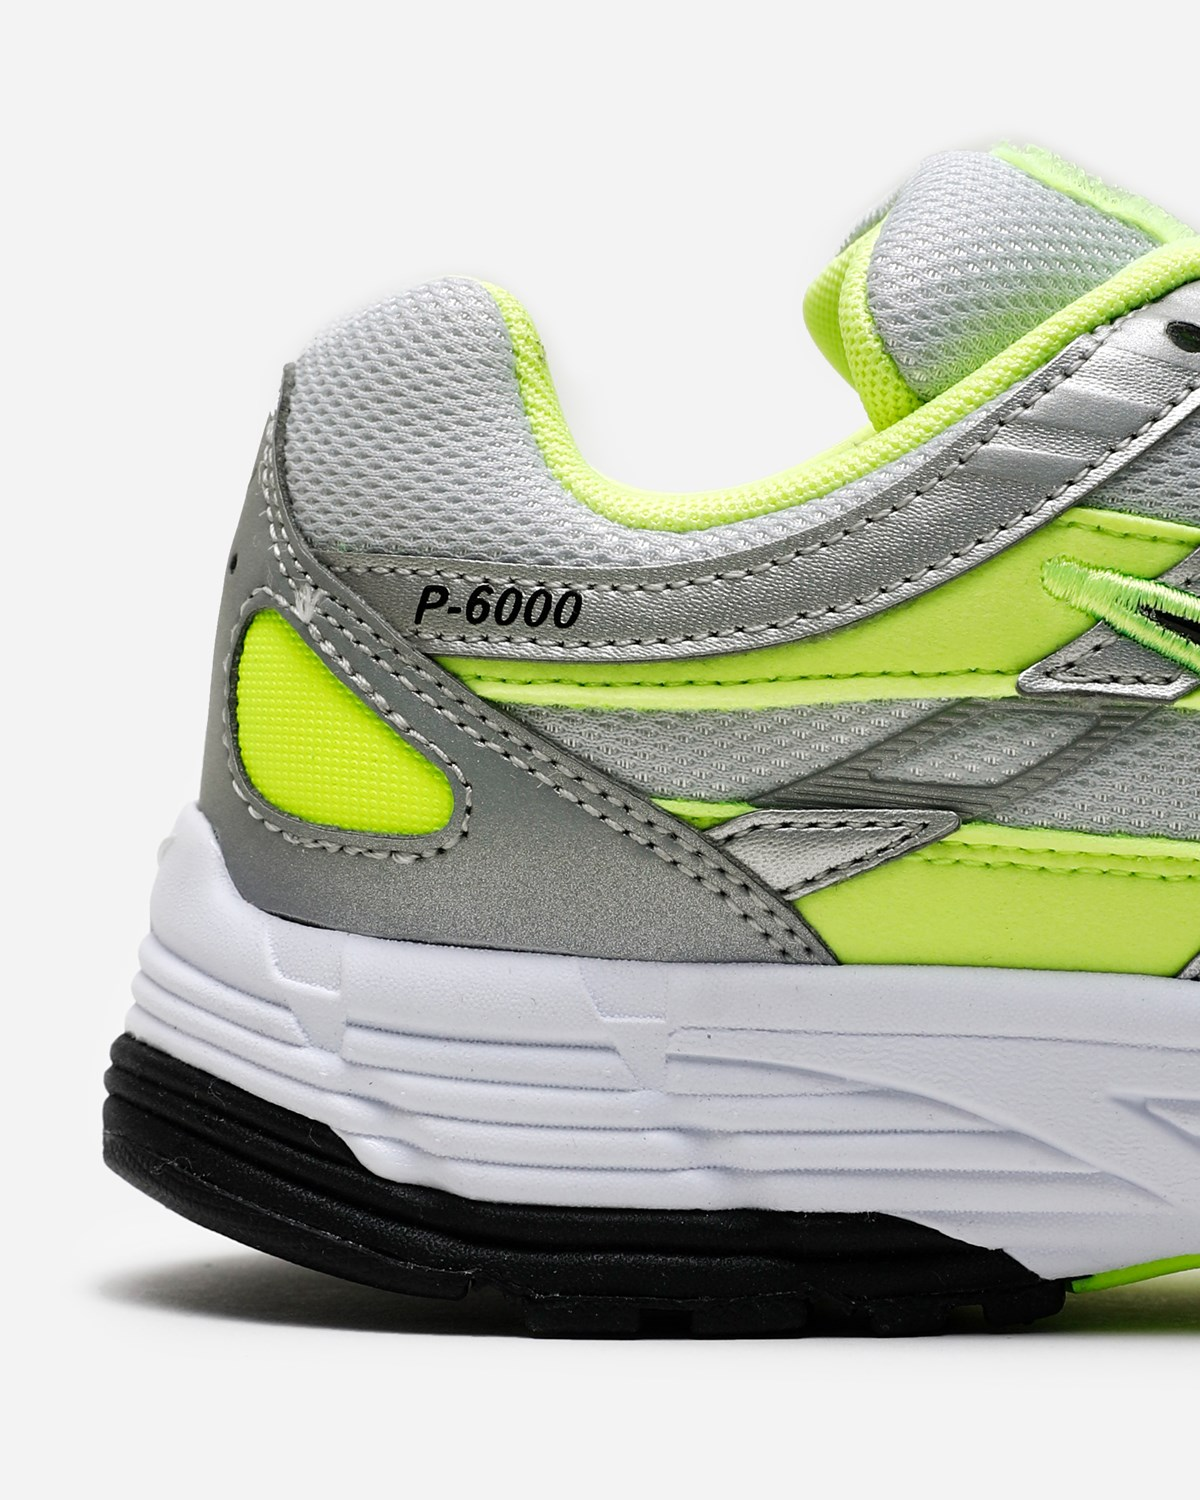 Nike P-6000 Naked CI7698-700 - Release Date   SneakerNews.com